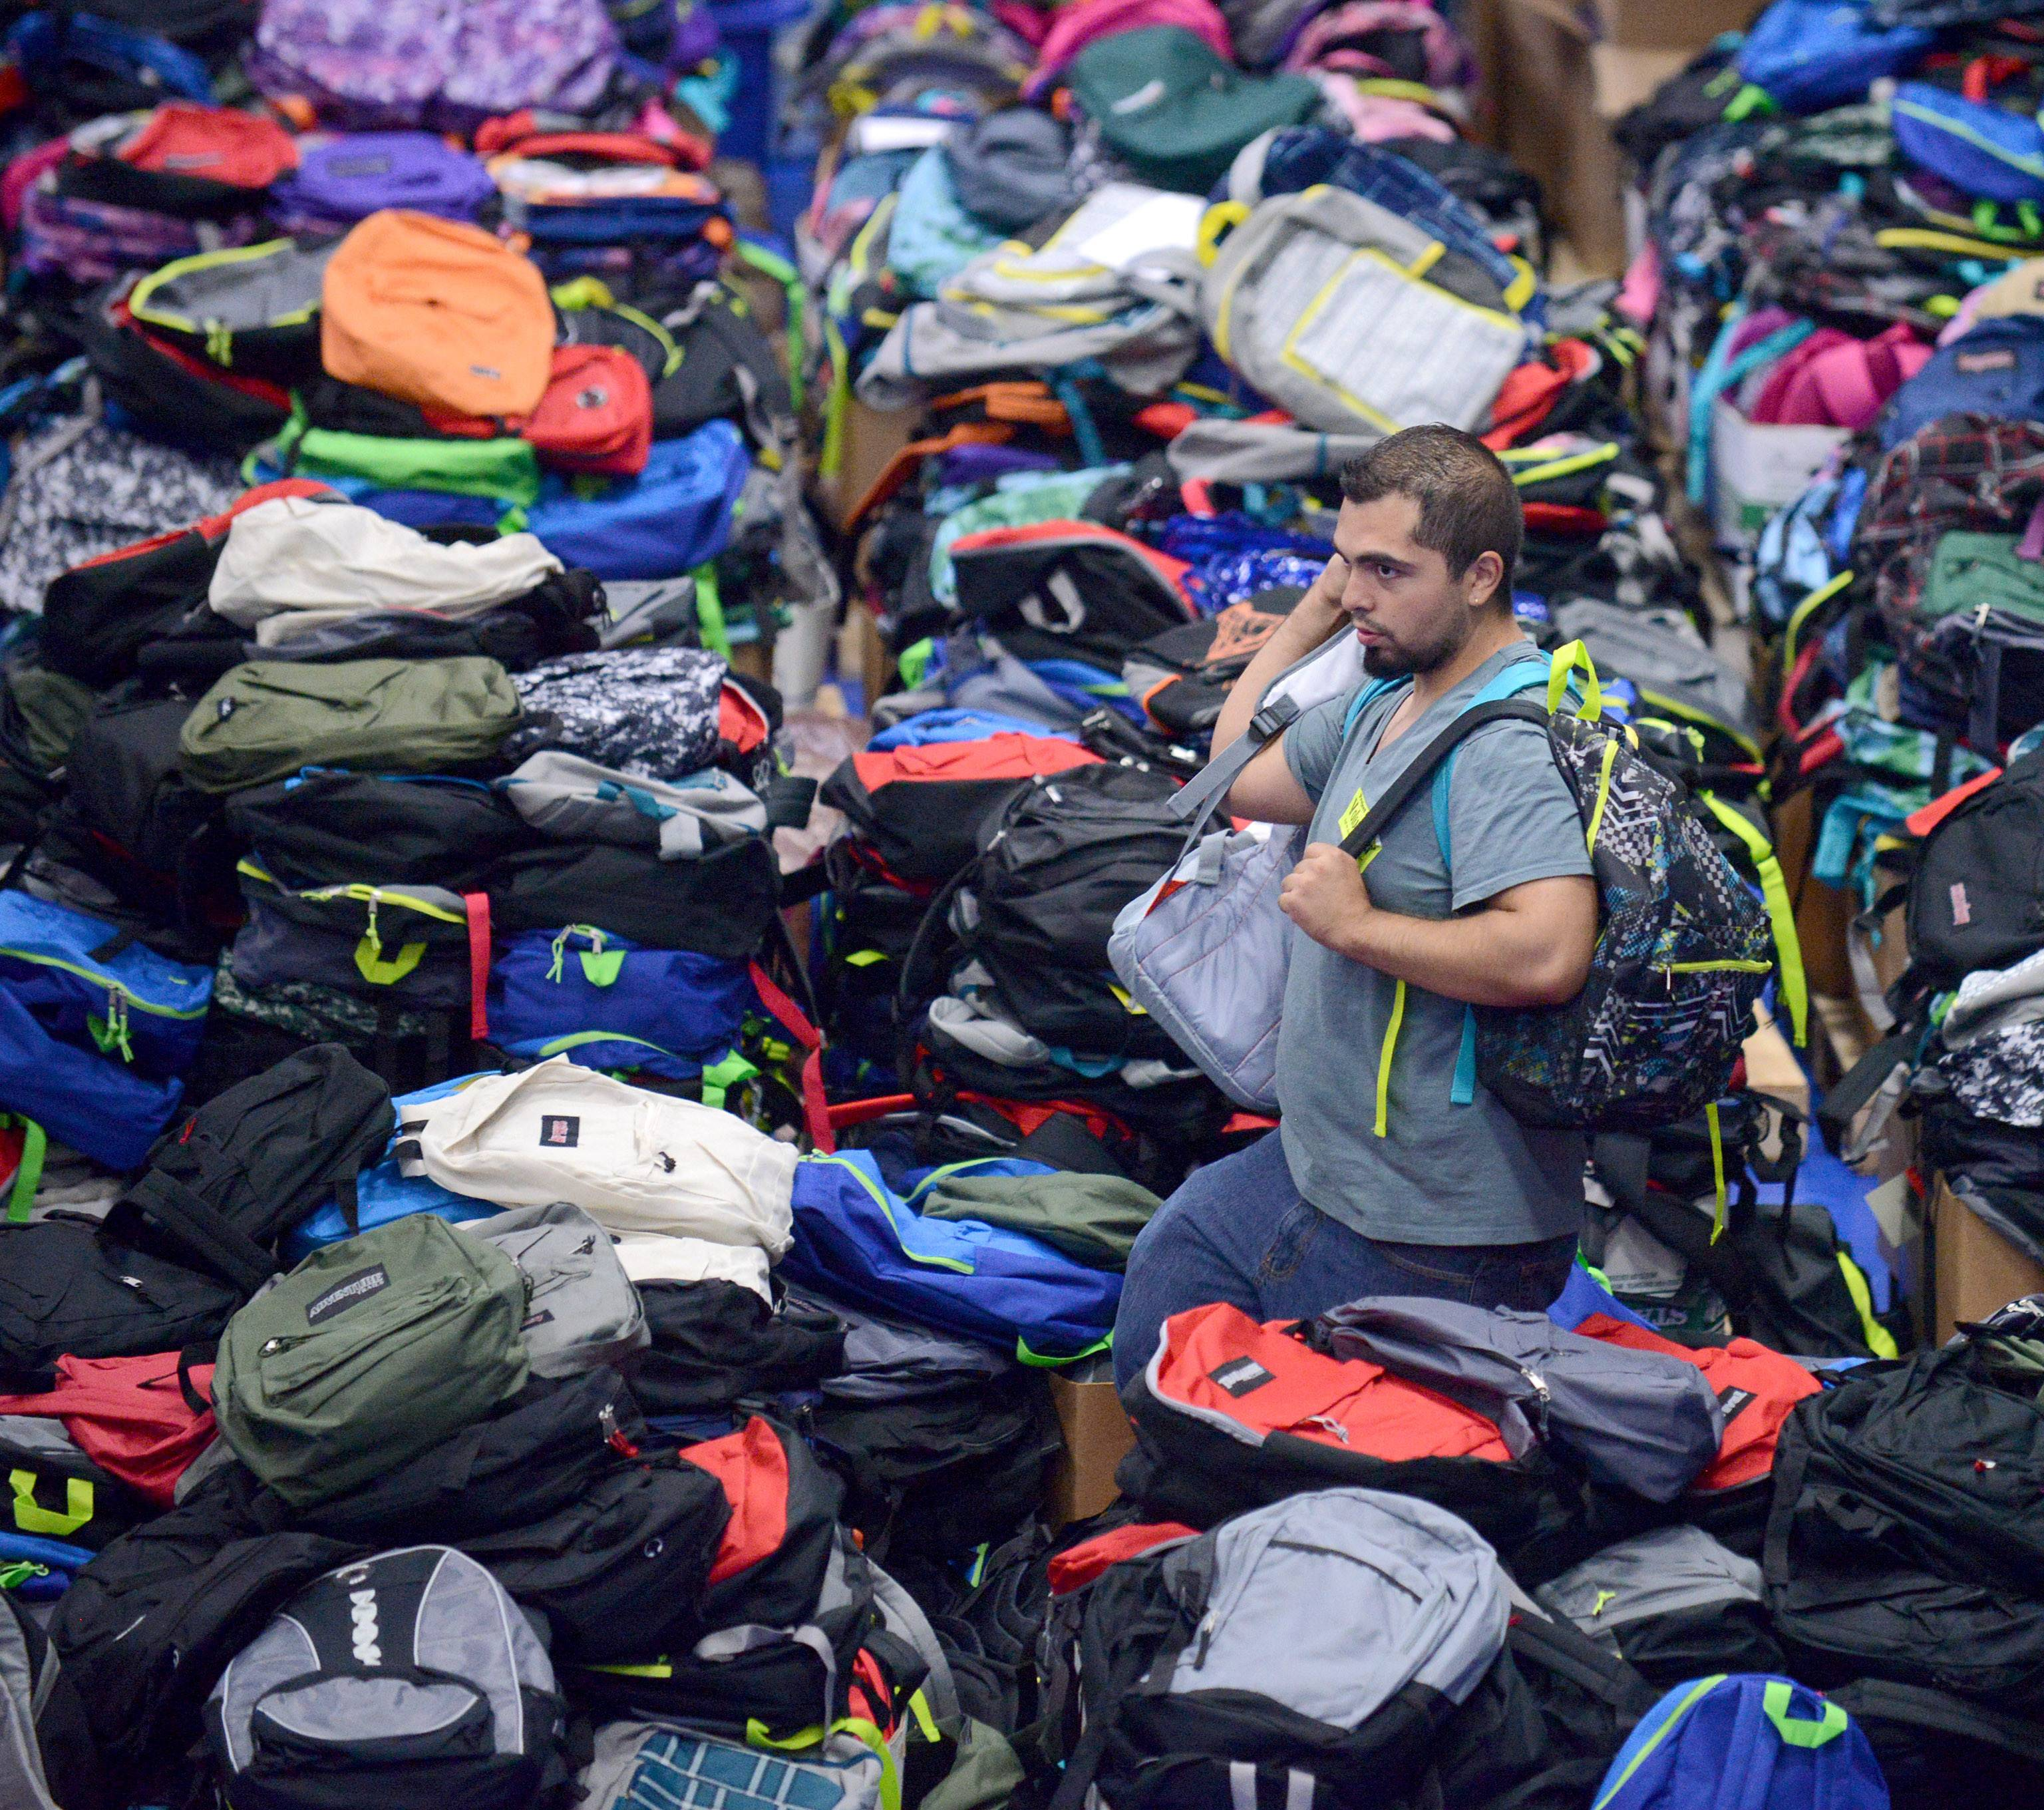 Project Backpack volunteer and Elgin Community College alumni, Joel Aguilera of Elgin, grabs backpacks from the reserve piles to bring to students waiting in line to pick one out at a recent event. The free school supplies and backpacks were on a first-come, first-served basis to local students enrolled in schools.